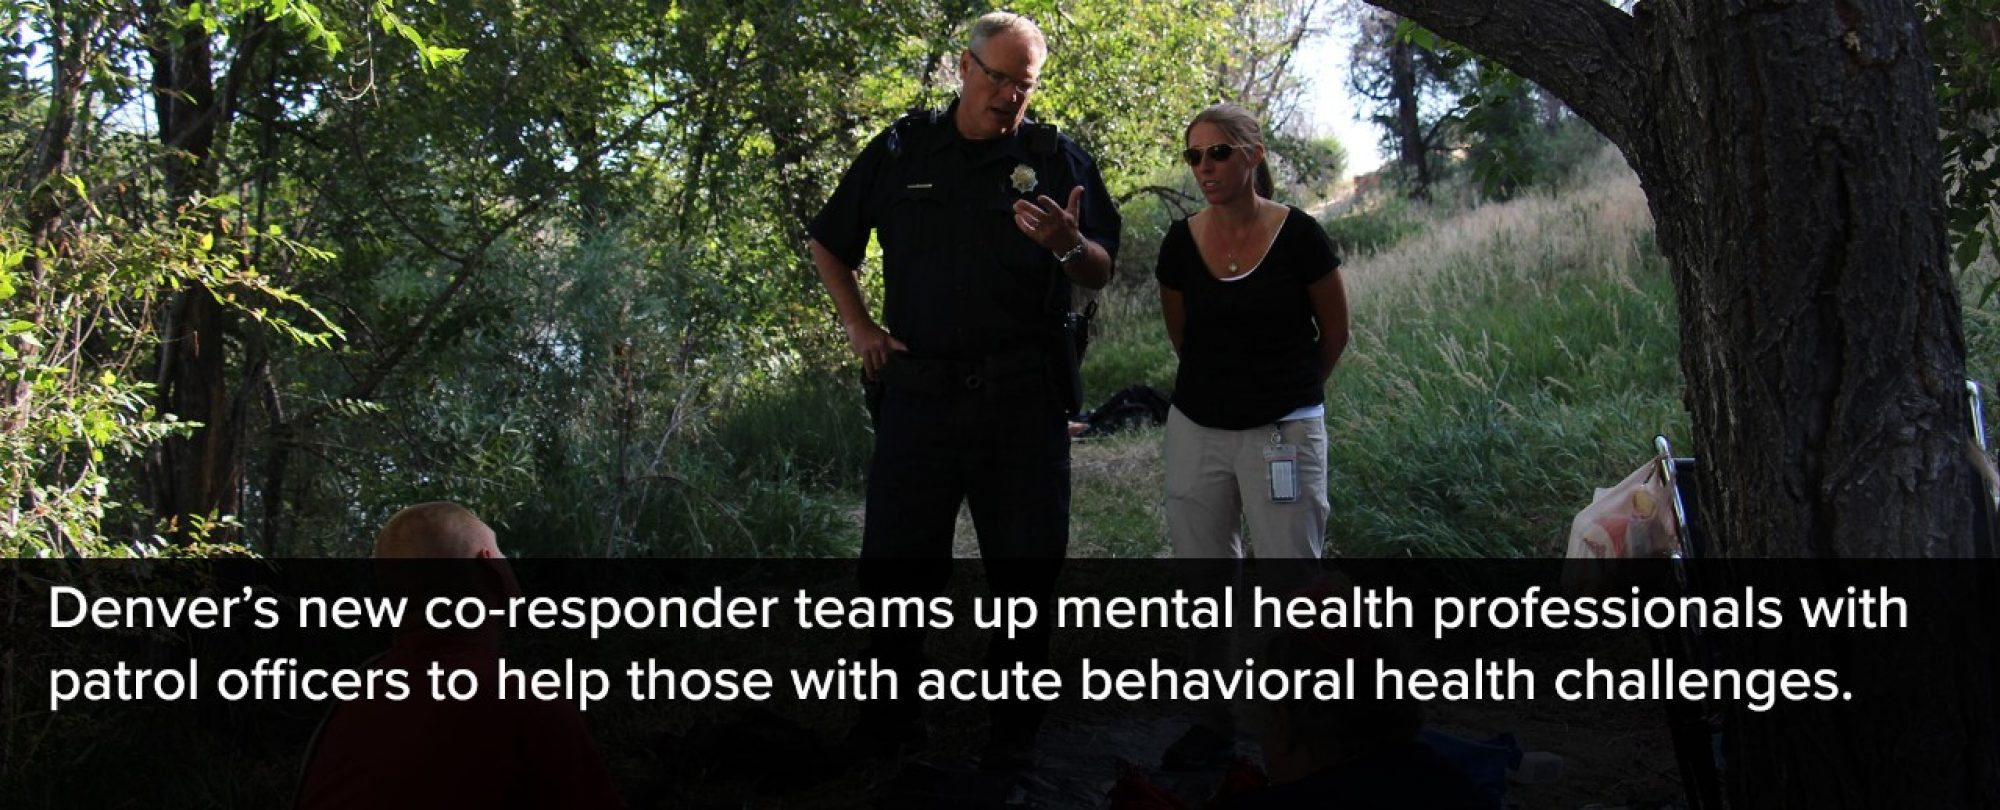 Photo of new co-responders on a park site. Denver's new co-responder teams up mental health professionals with police officers to help those with acute behavioral health challenges.